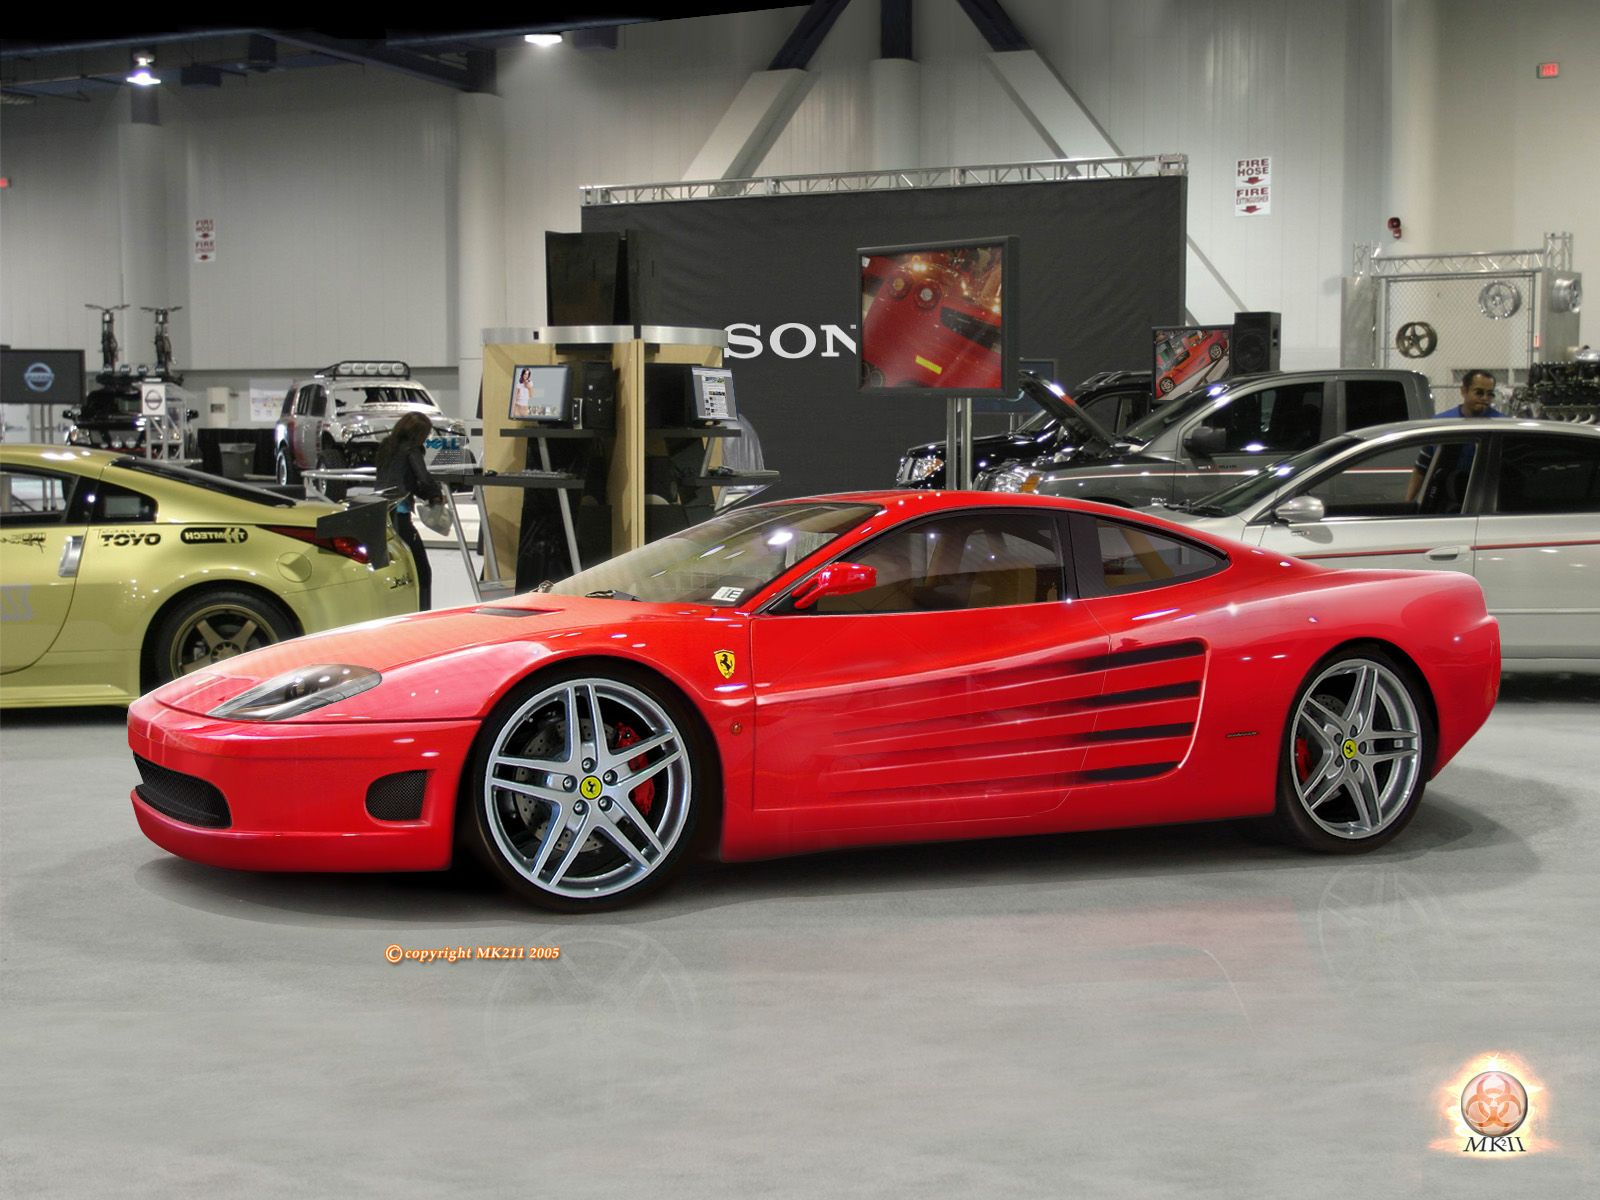 Ferrari Testarossa Still One Of The Coolest Cars Ever